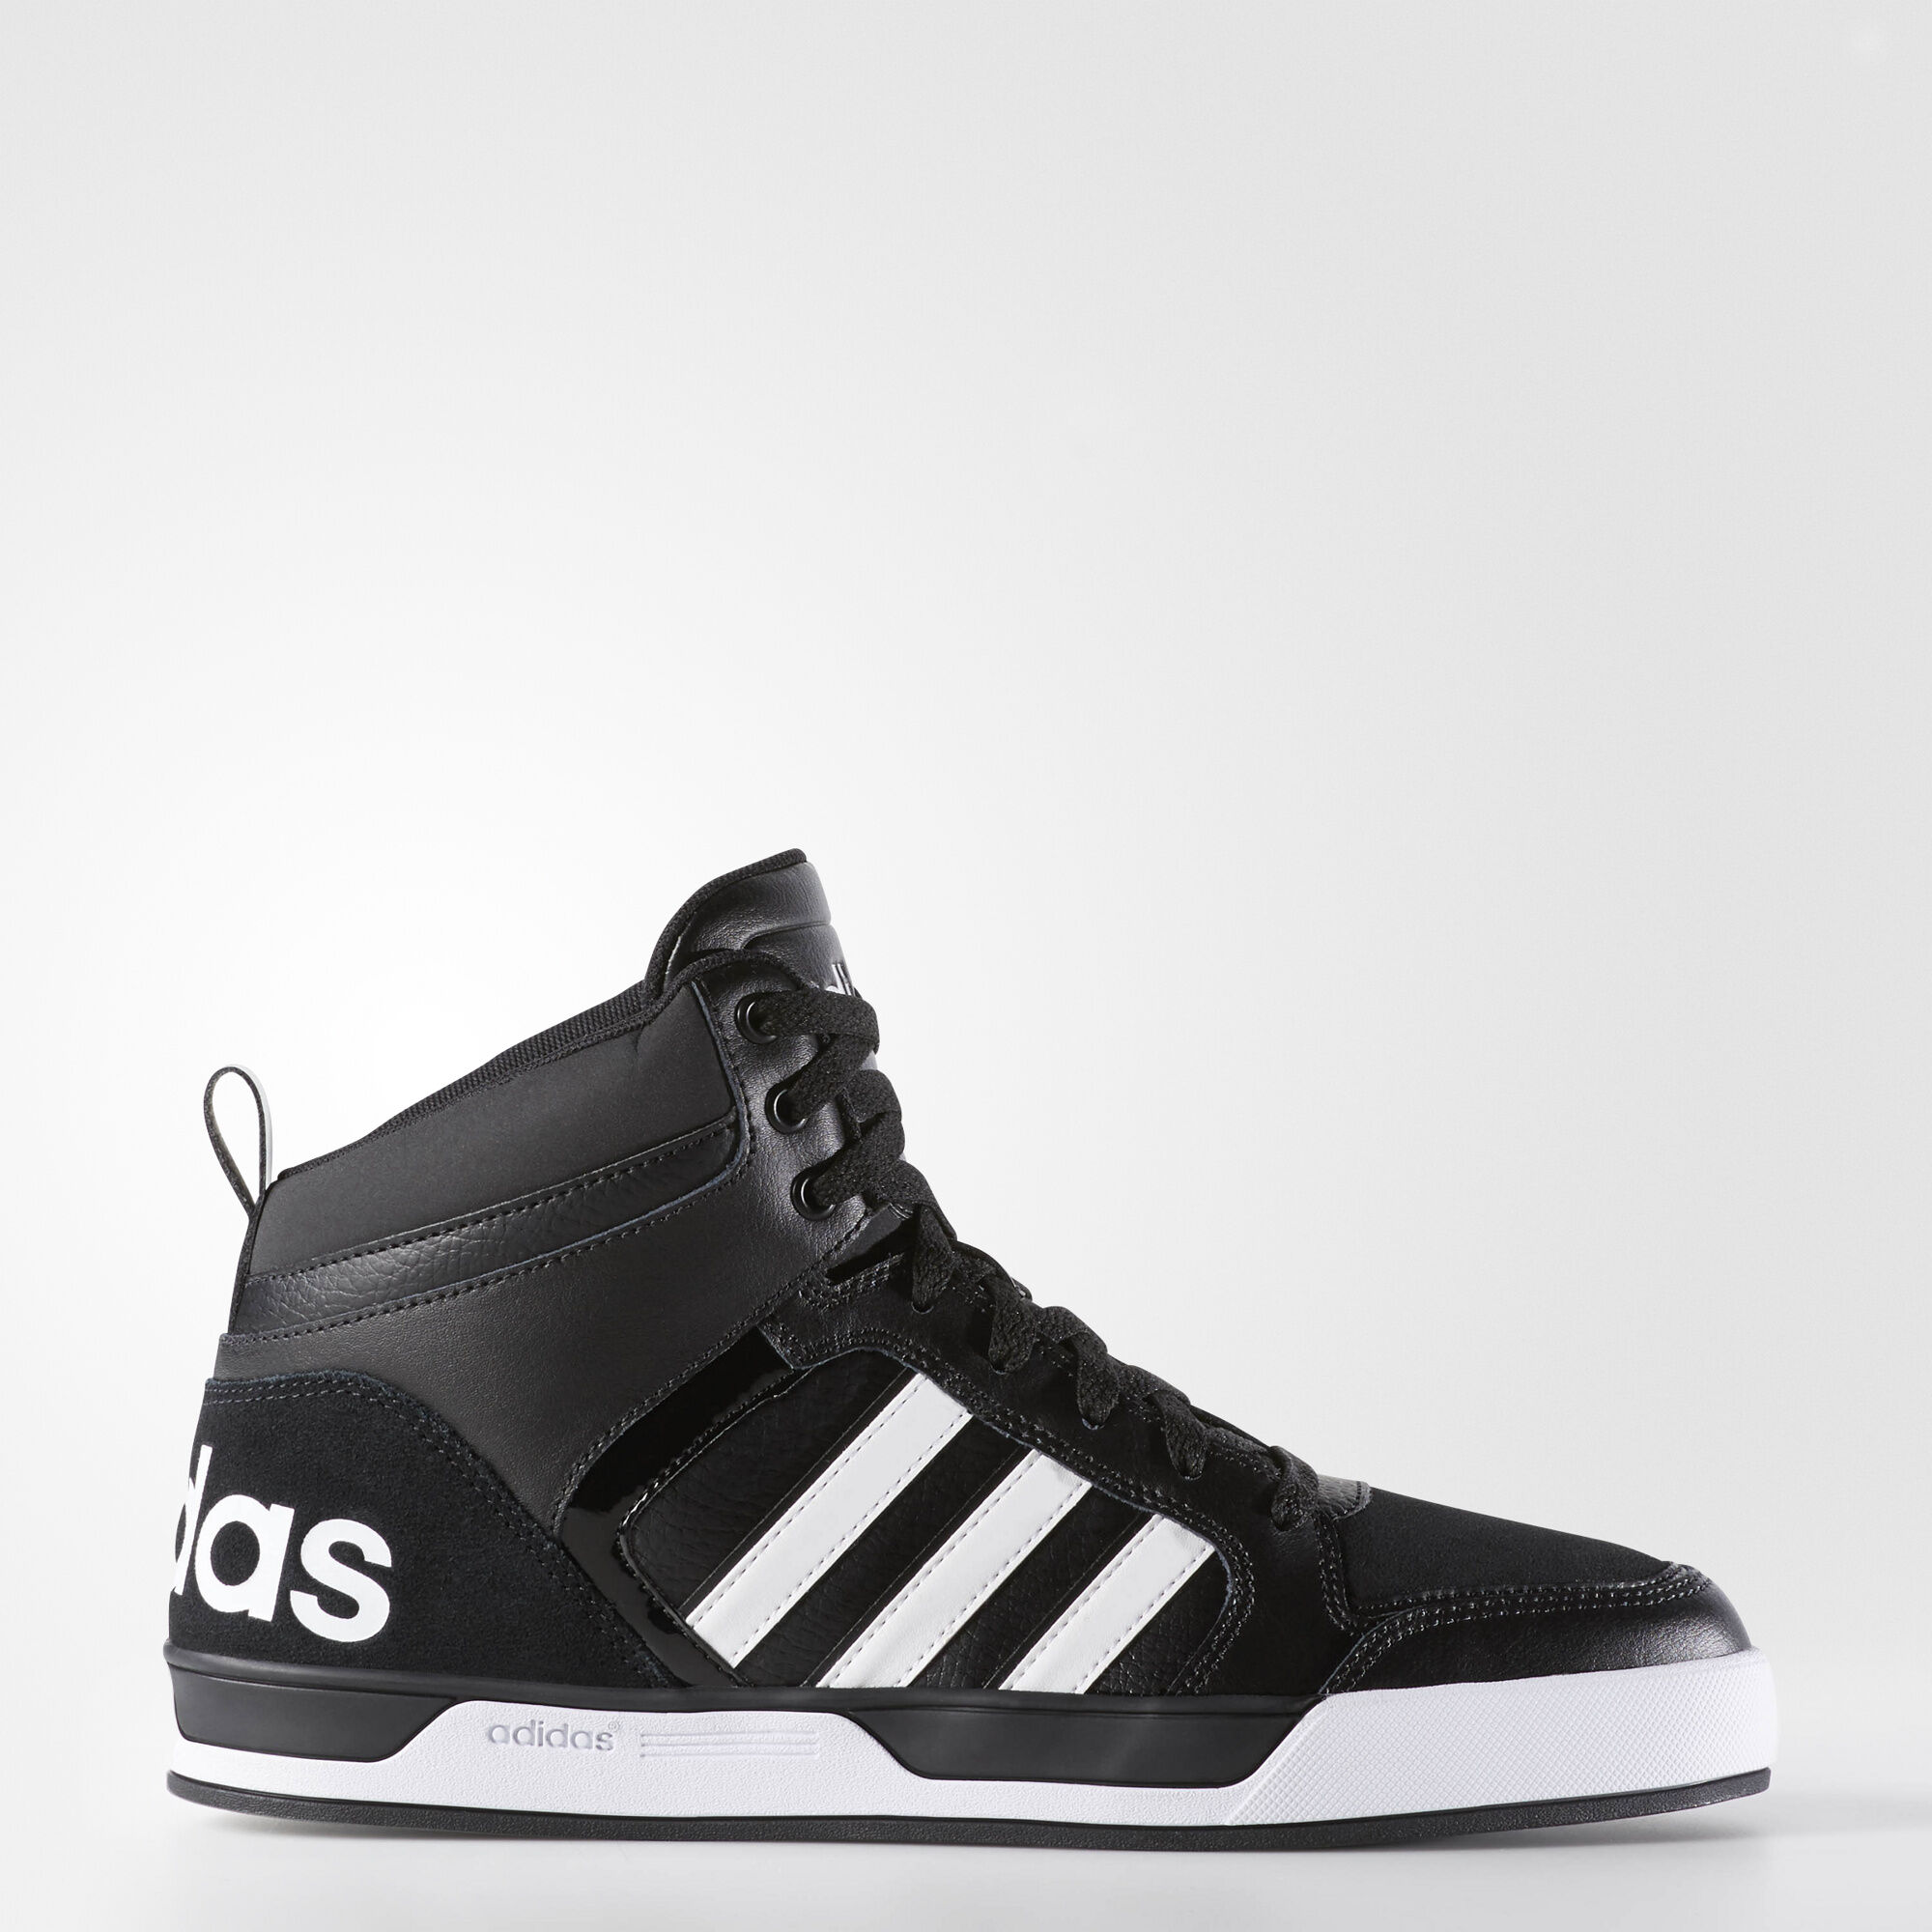 Adidas Neo Raleigh 9tis Mid Sneakers